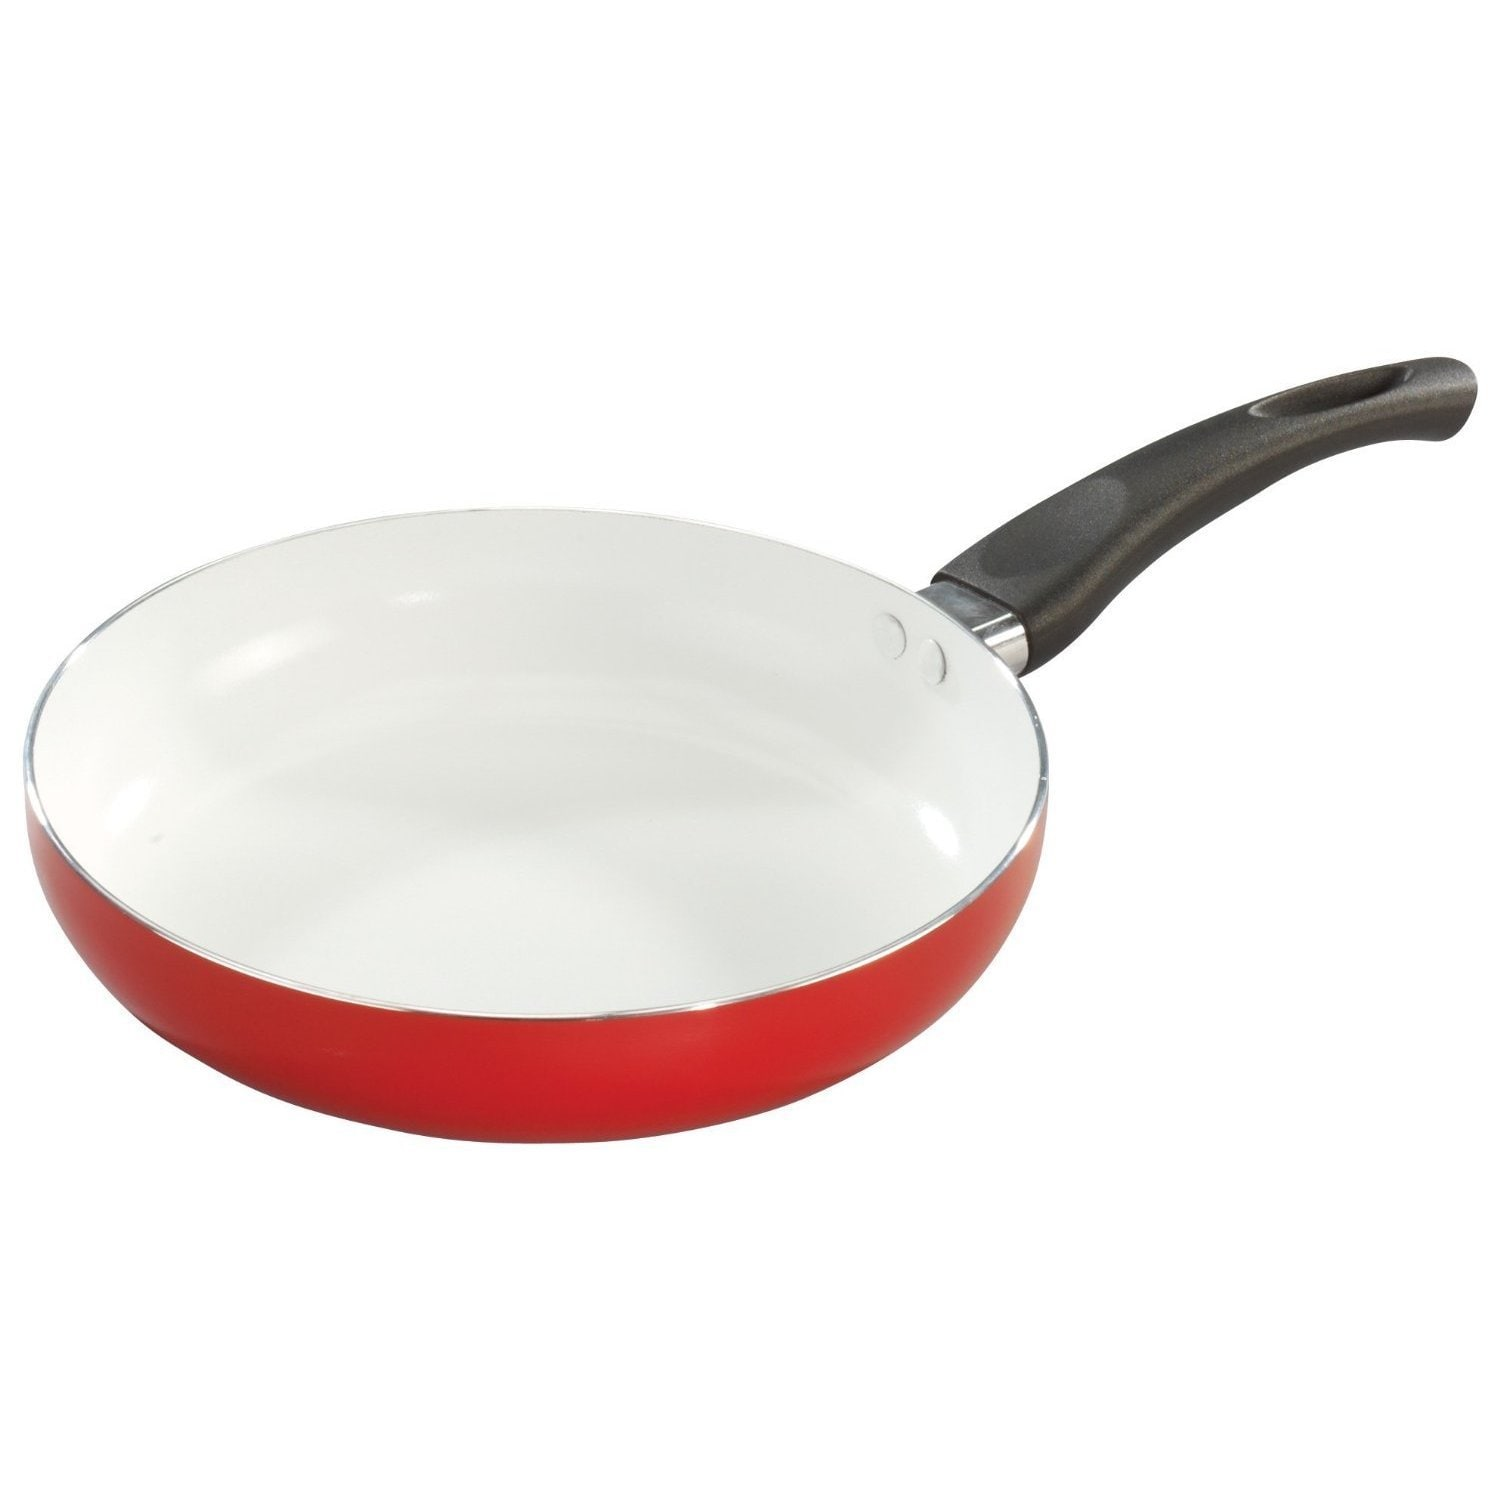 Frying pan with ceramic coating: reviews and problems 12